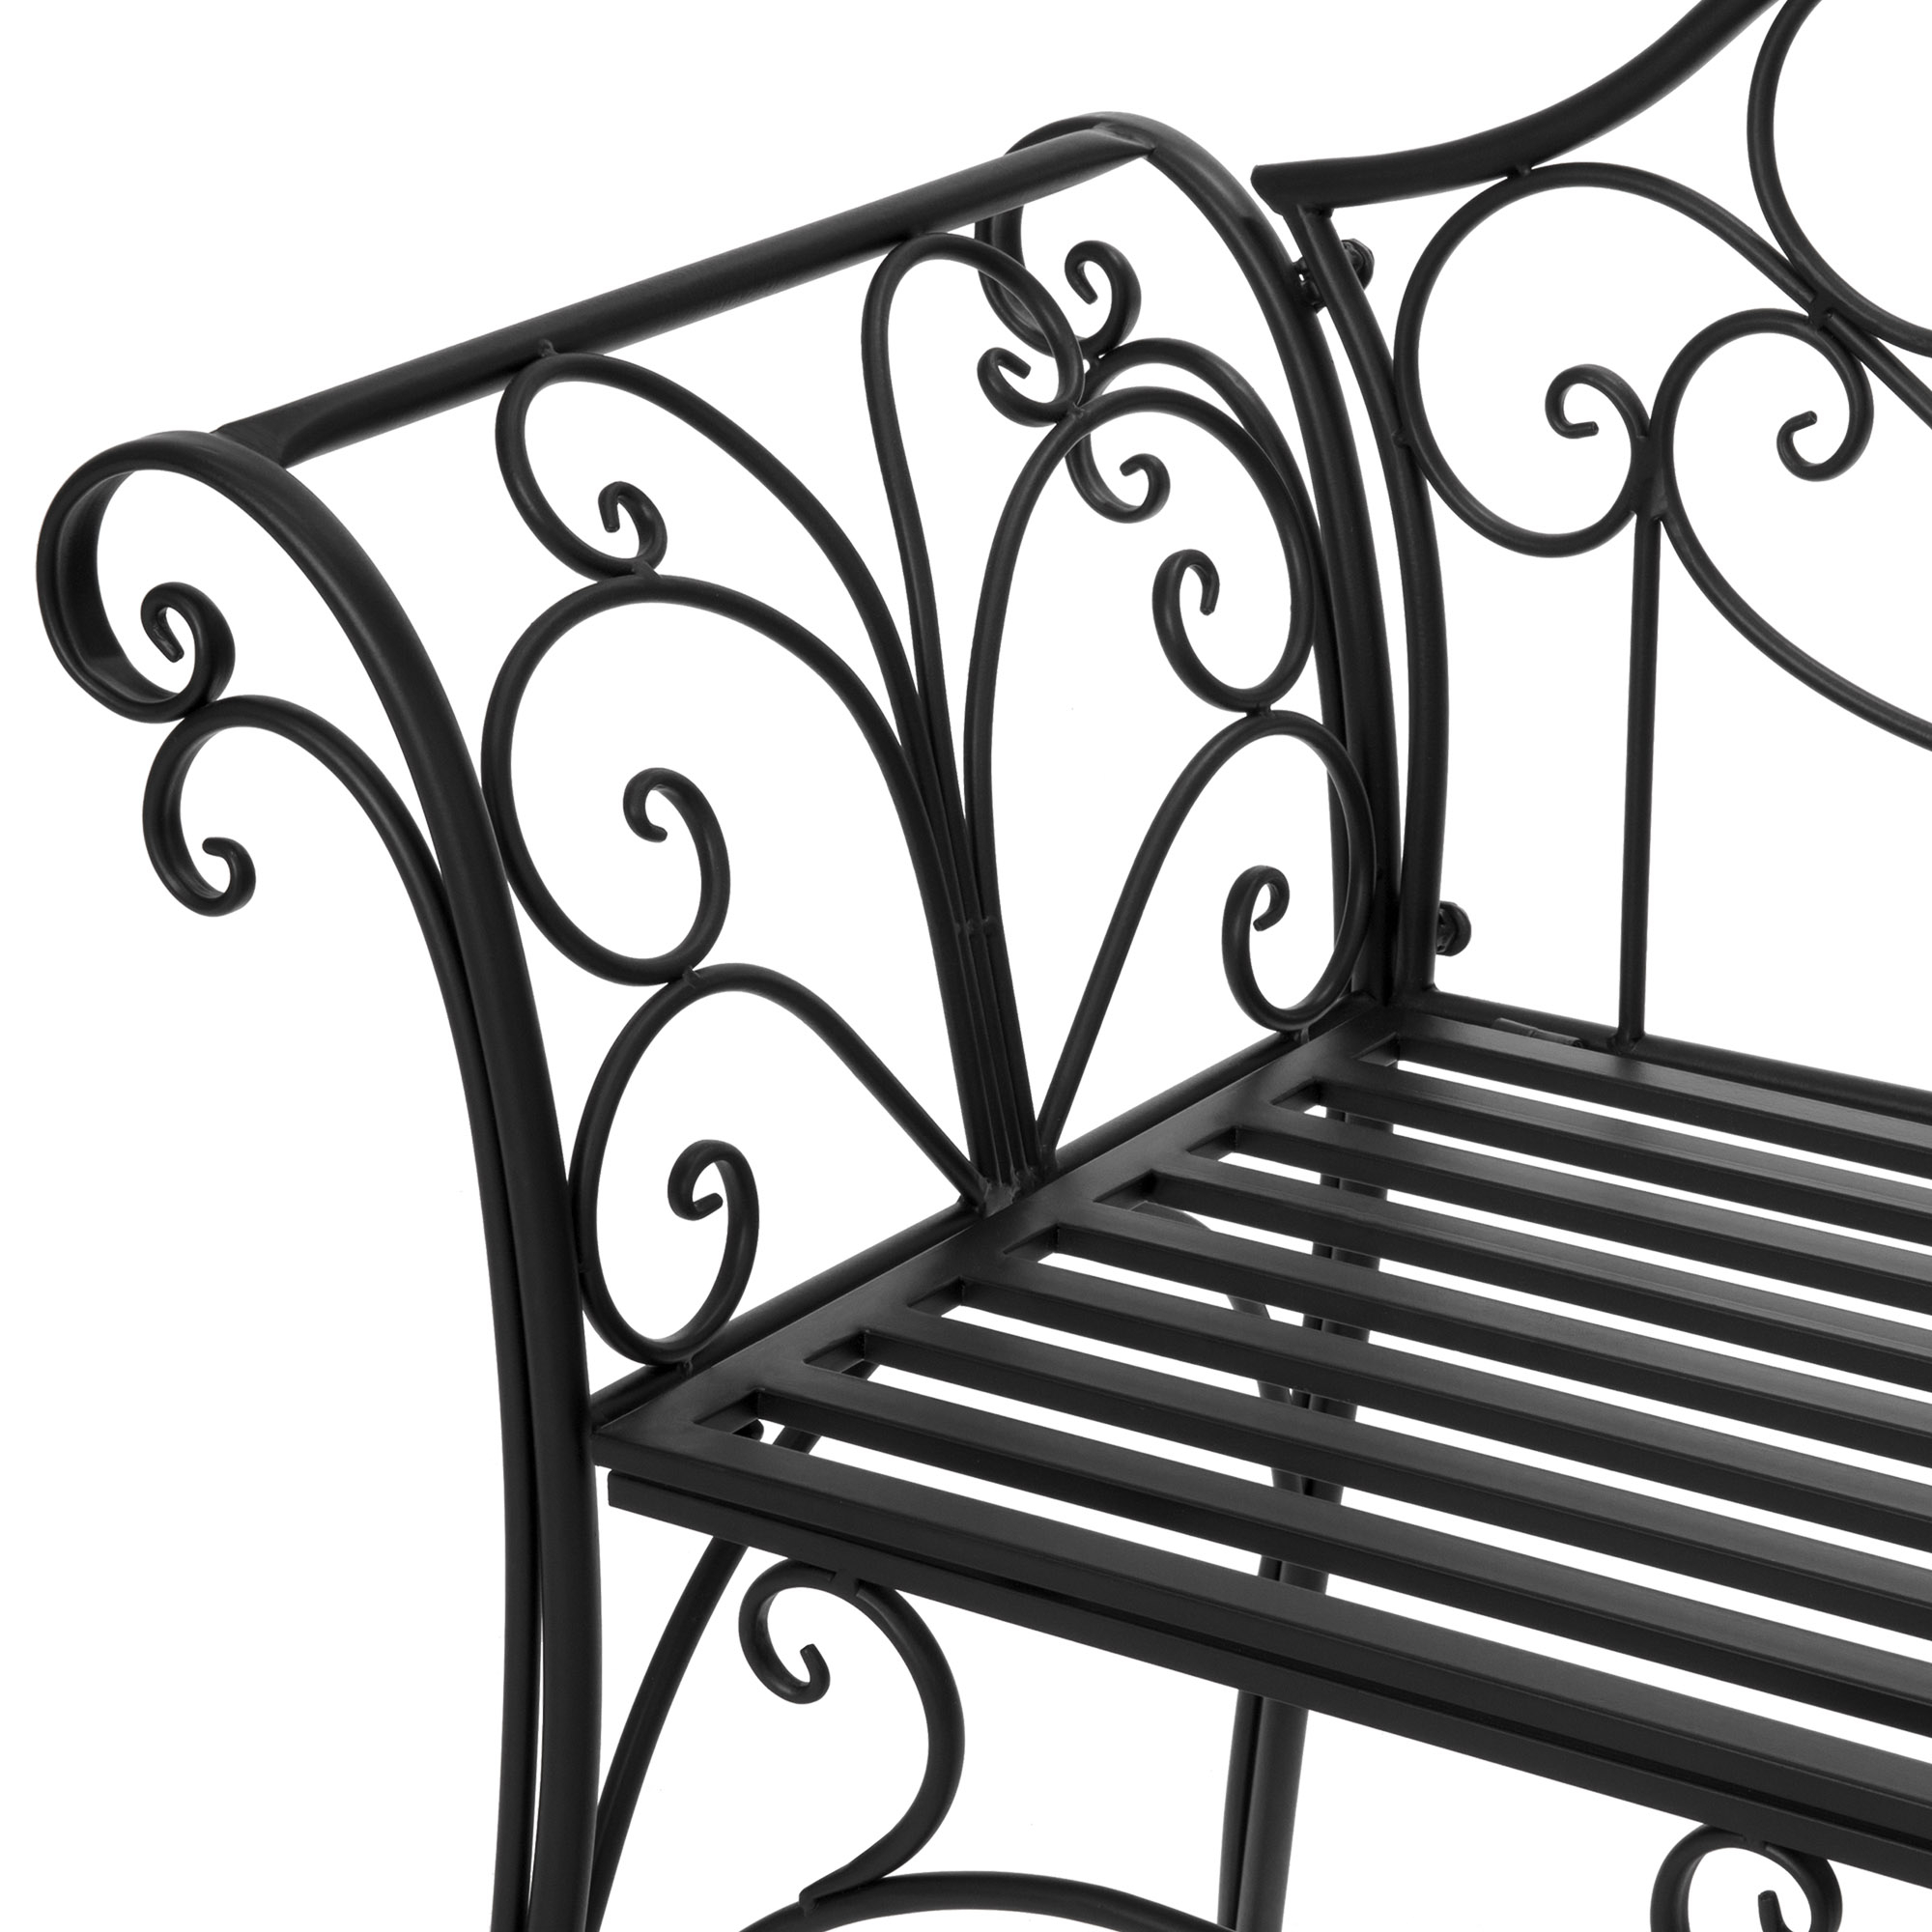 2 Person Black Steel Outdoor Swings For Well Known Swing Chair 2 Person Garden Bench 52 Inch Decorative Scroll (View 3 of 25)